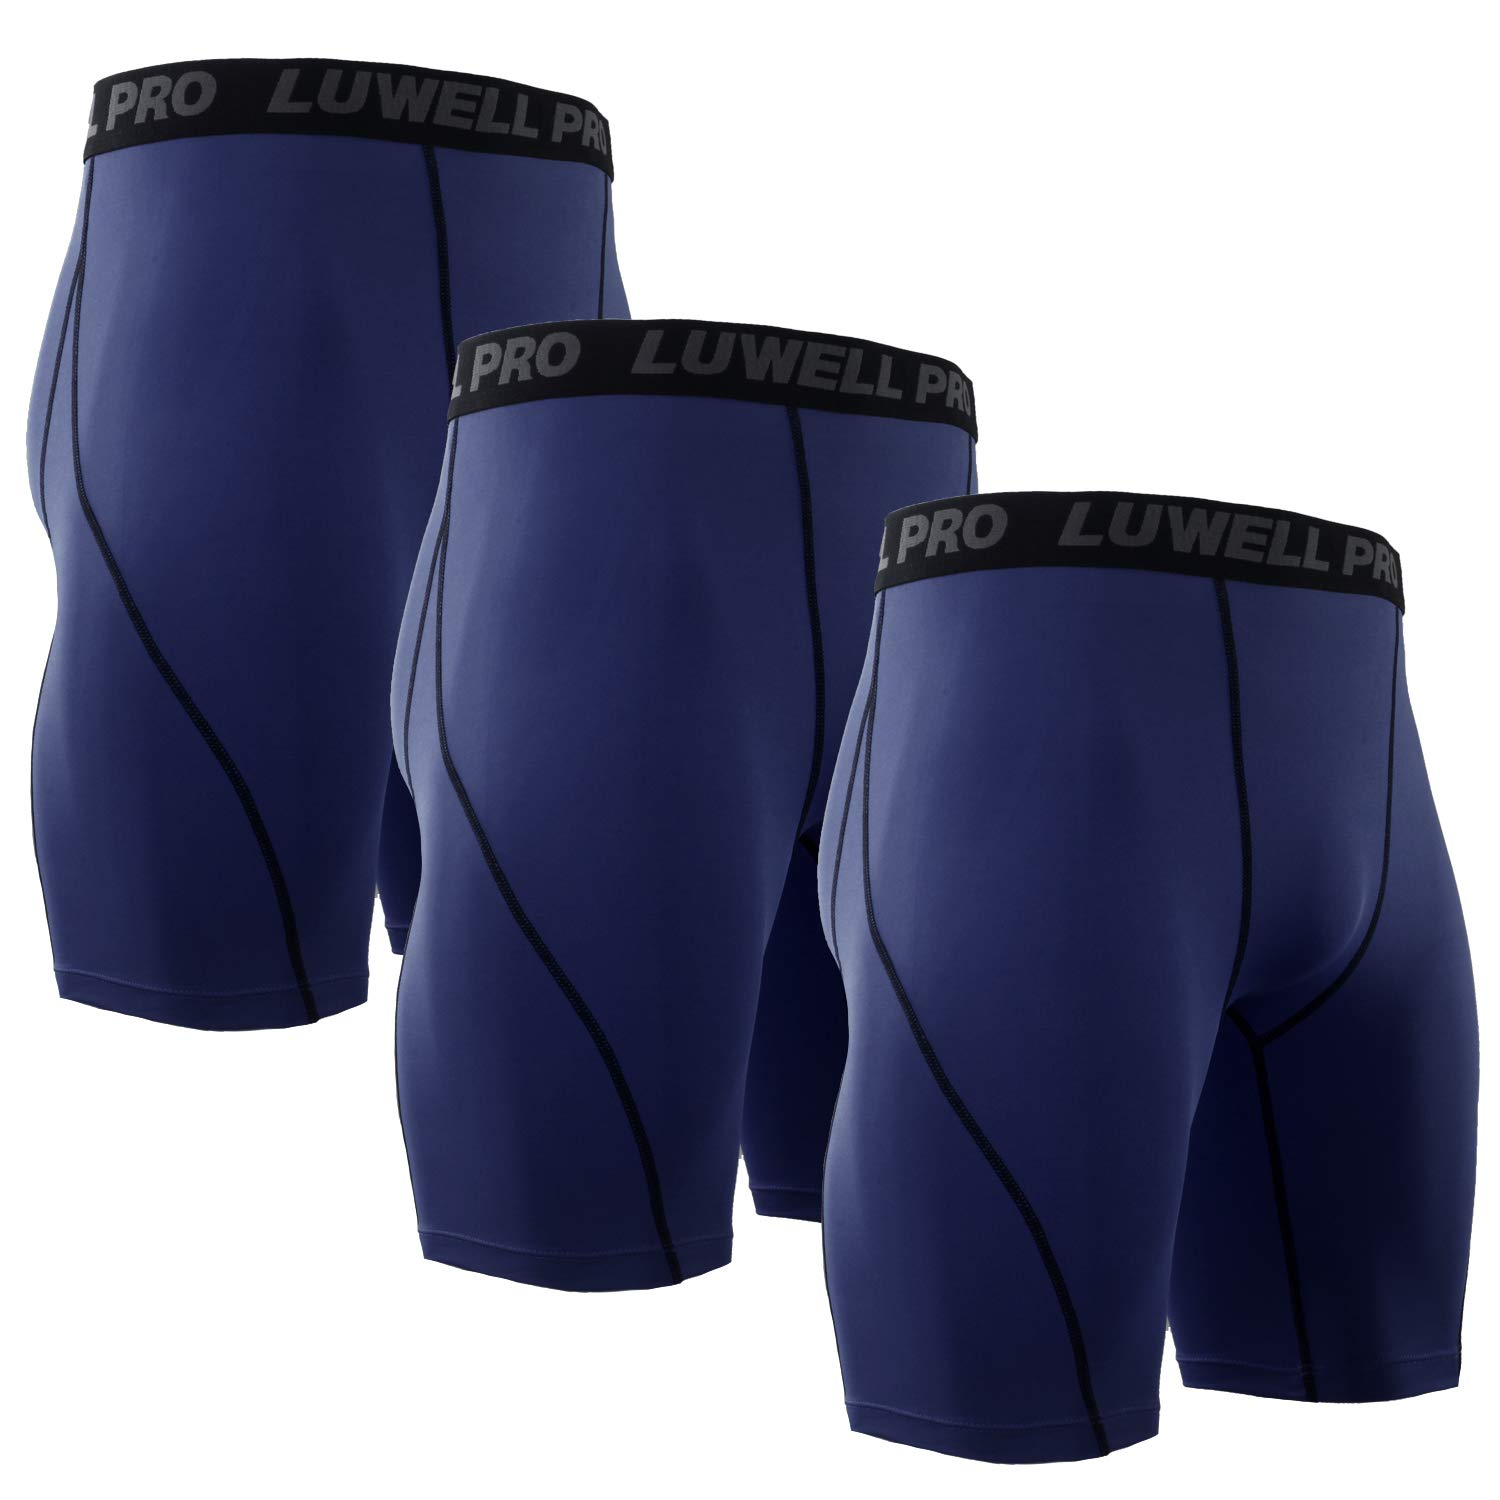 LUWELL PRO Men's 3 Pack Compression Shorts Baselayer Cool Dry Sports Tights Shorts for Running,Workout,Training(3Nave Blue,S)